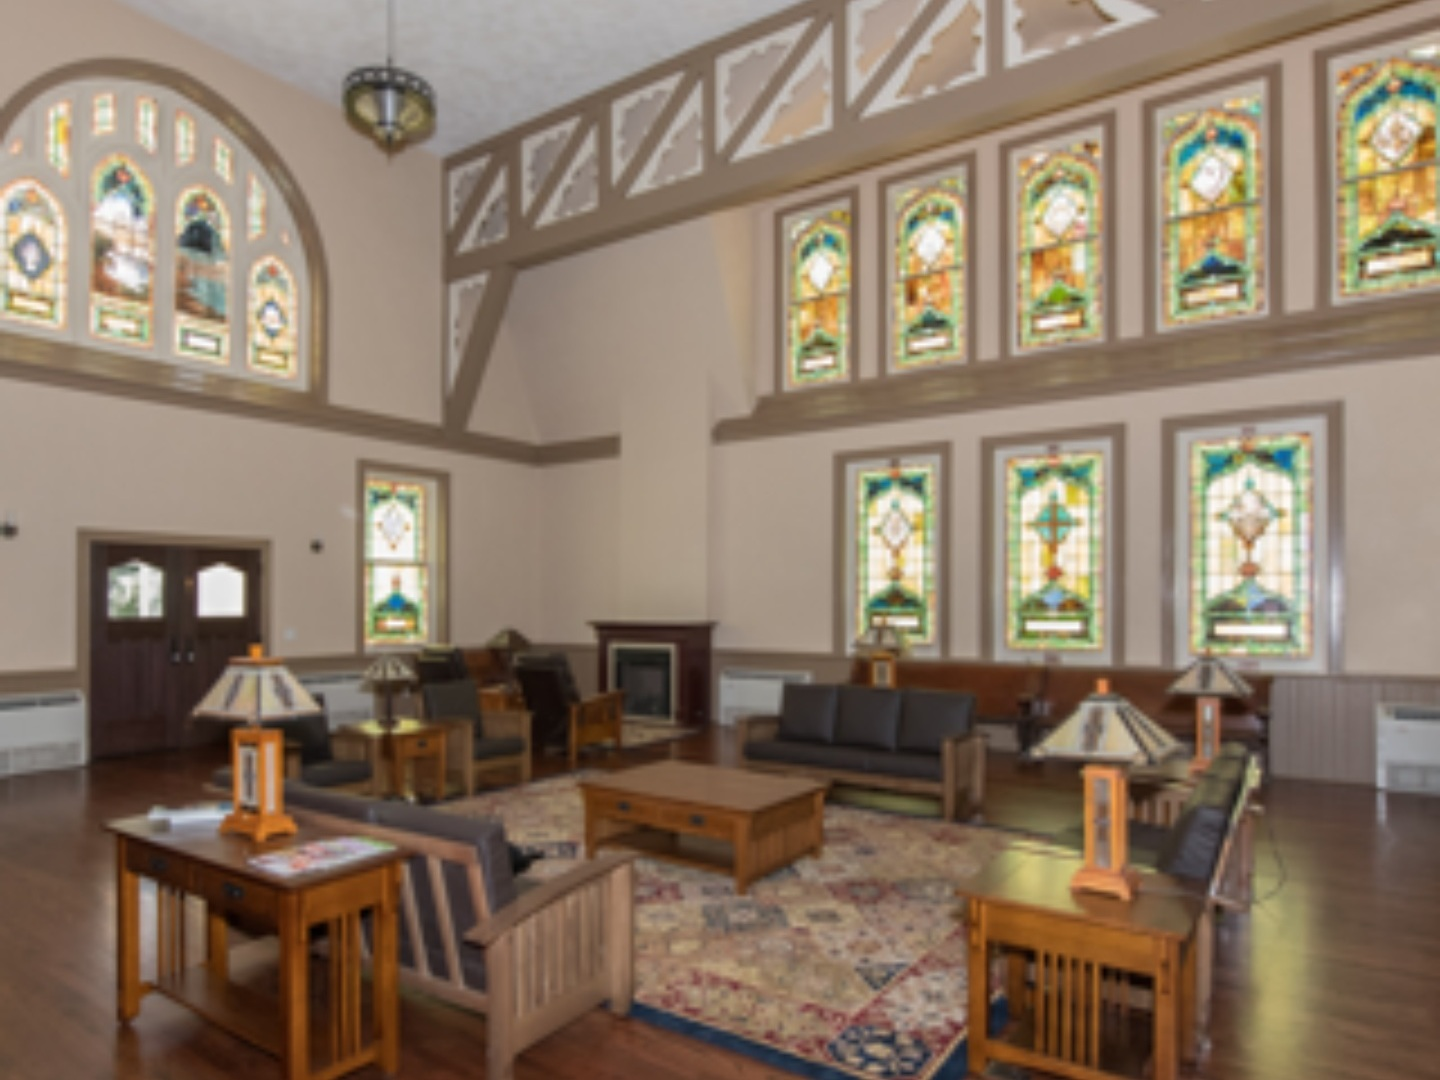 A living room filled with furniture and a large window at Tuxedo Park STL Bed & Breakfast Inn.